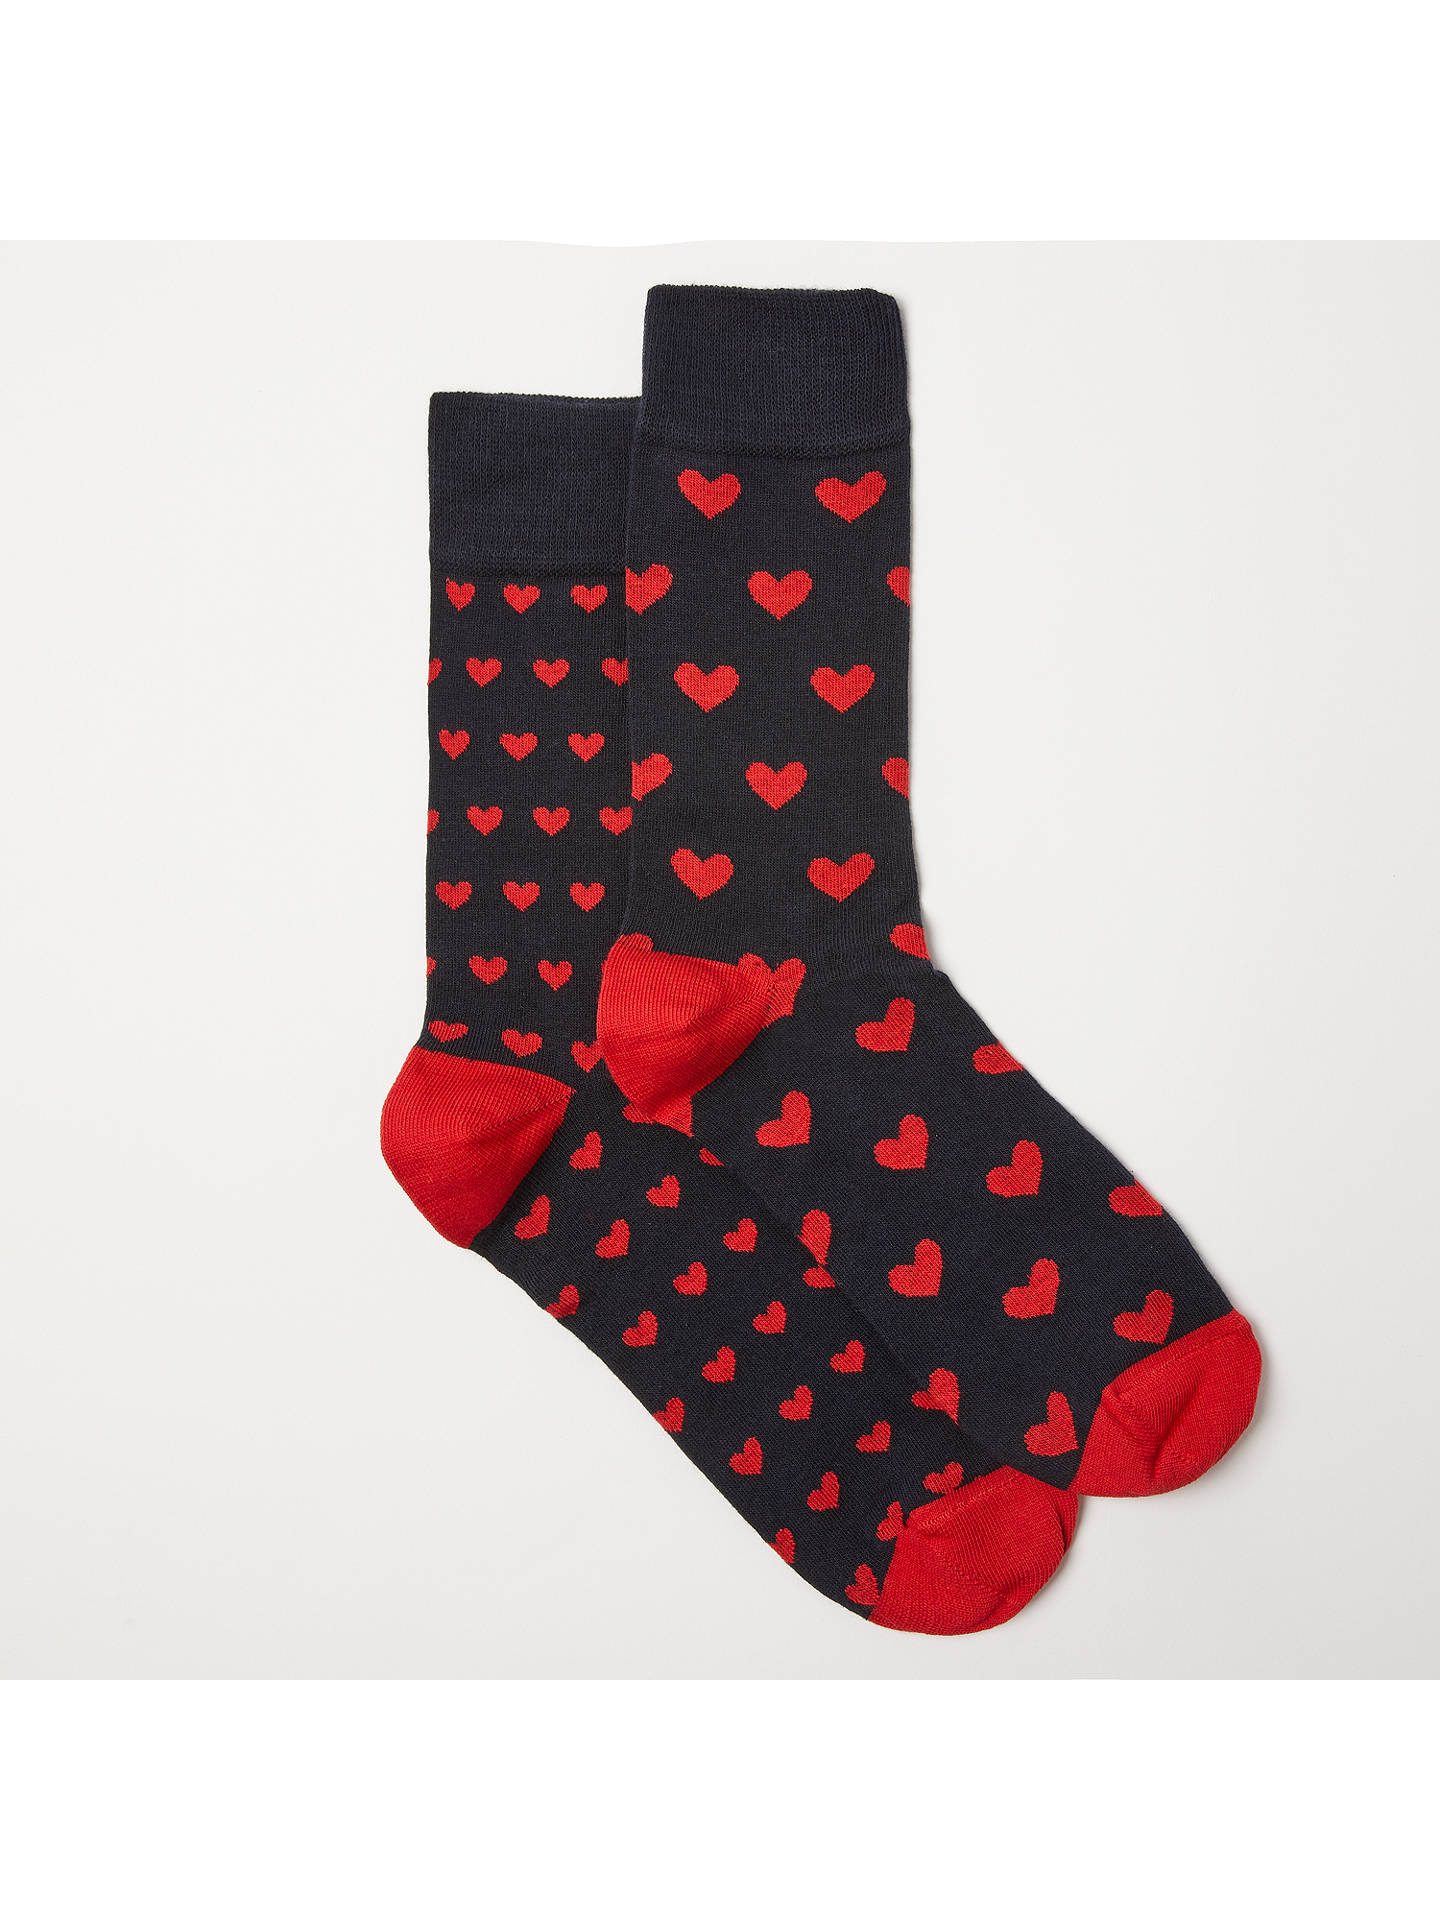 Buy John Lewis Heart Socks, Pack of 2, One Size, Navy/Red Online at johnlewis.com